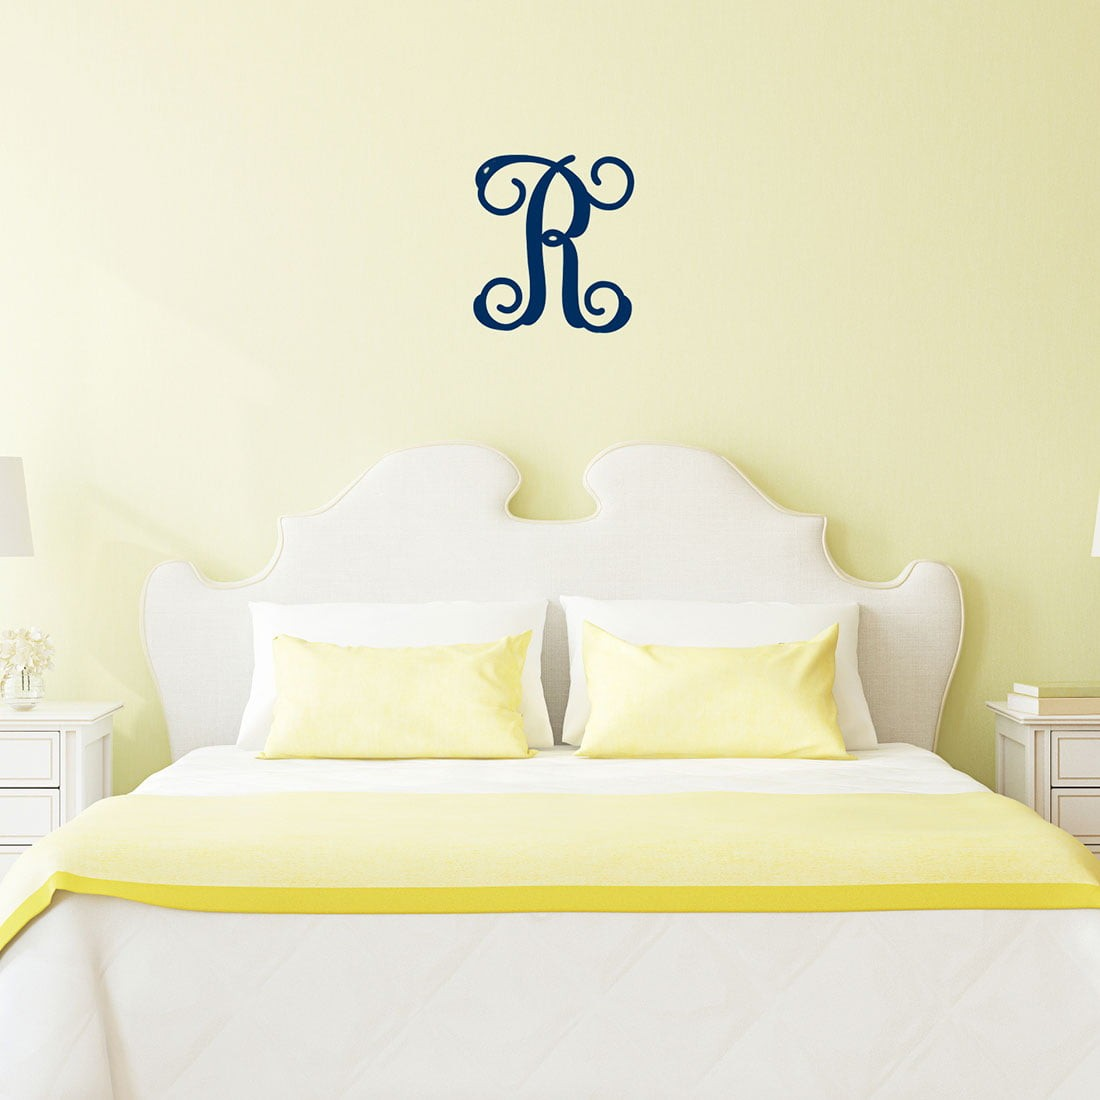 Dorable Wooden Monogram Wall Decor Gallery - The Wall Art ...